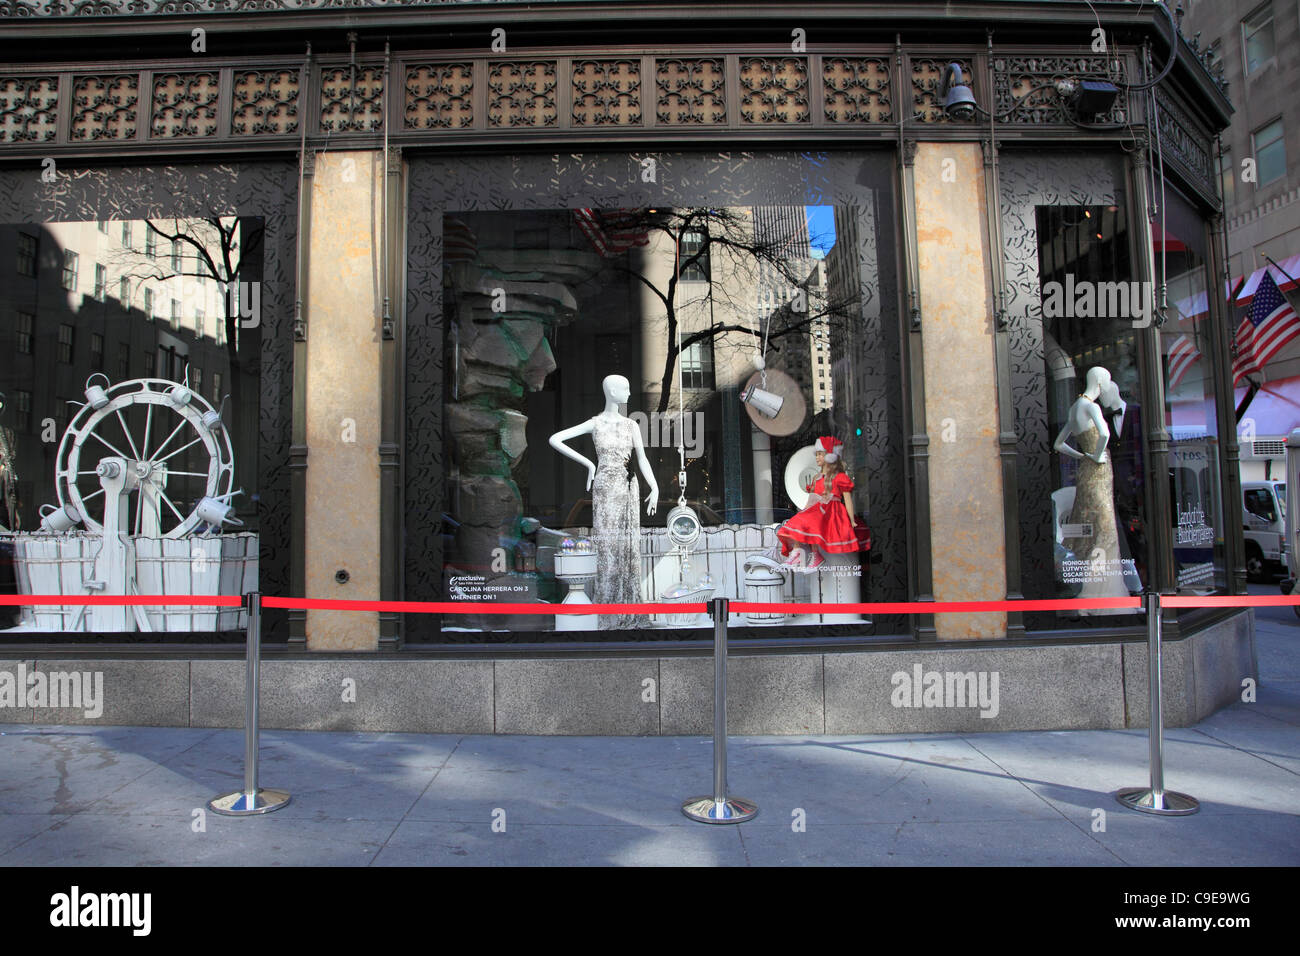 Saks Fifth Avenue Christmas 2020 Window Display Windows of Saks Fifth Avenue Department Store Decorated for